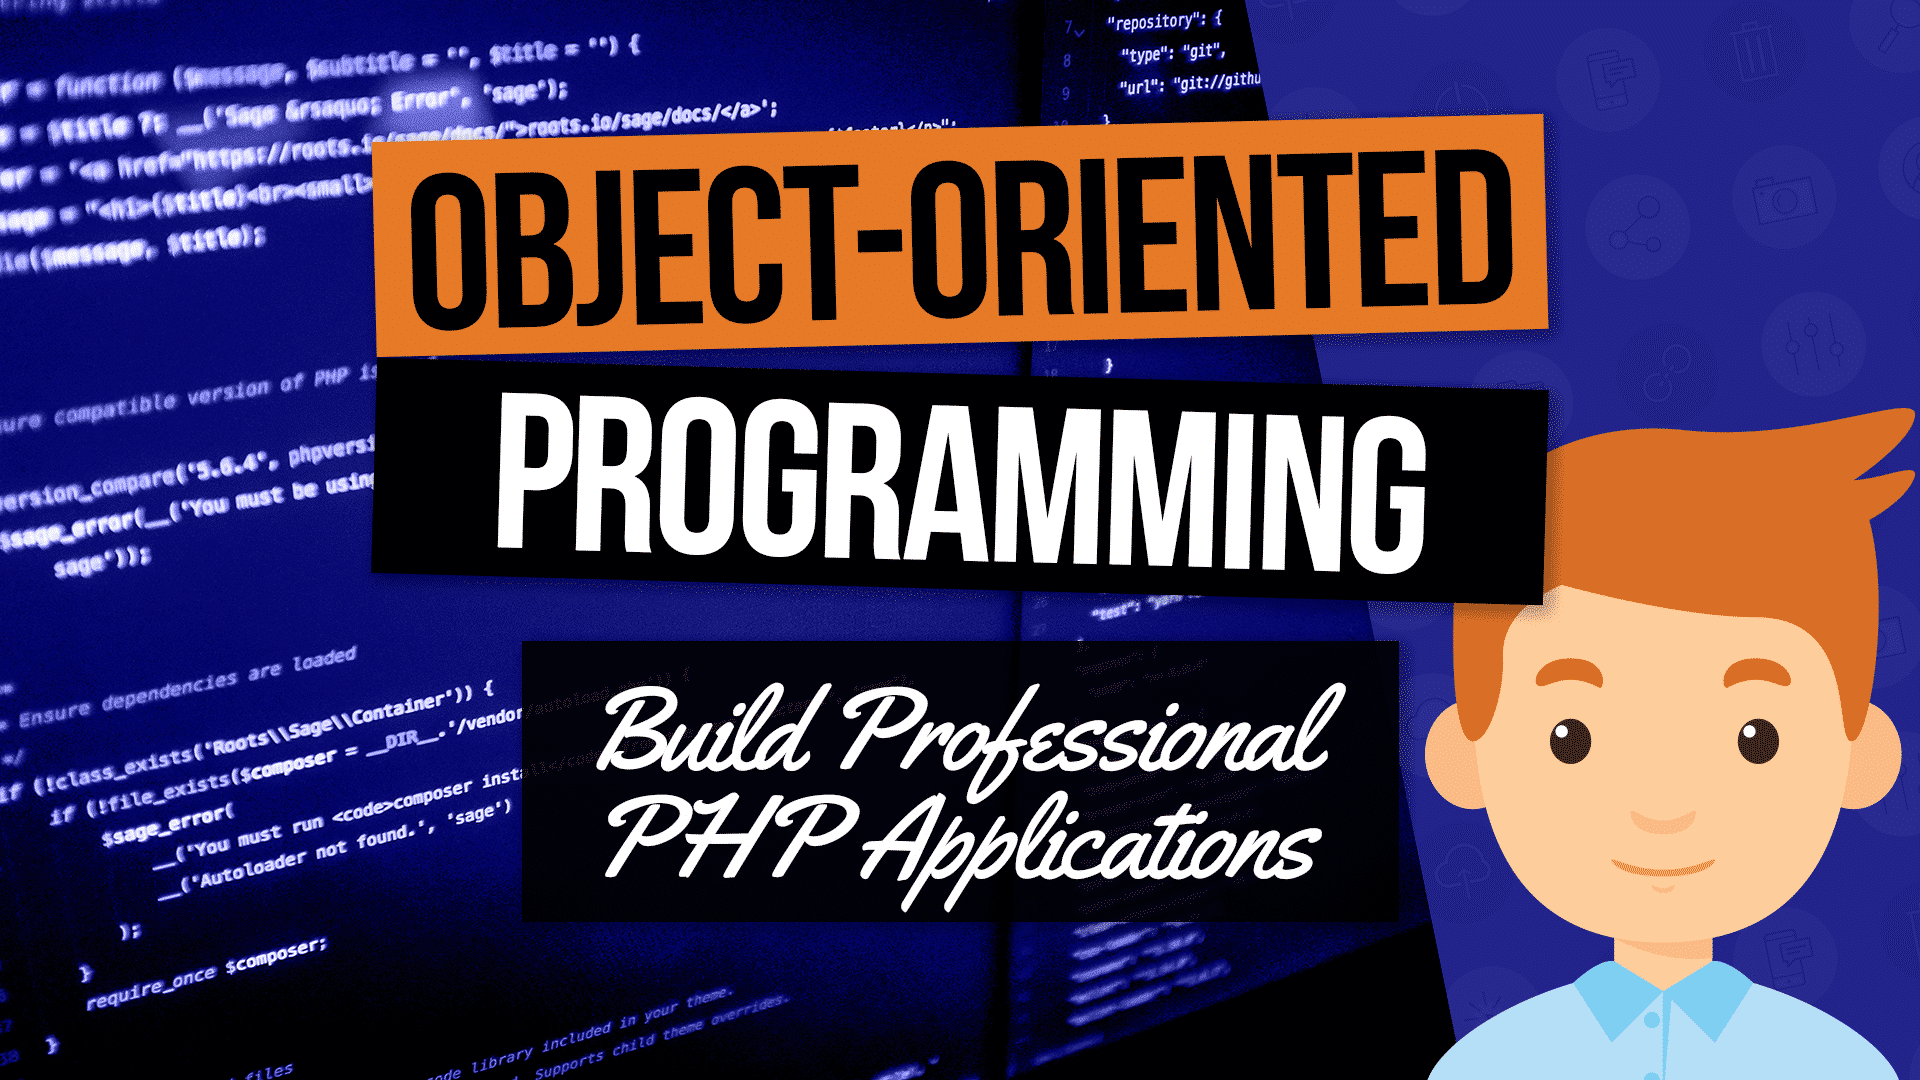 [Skillshare] Foundations: Build Professional PHP Applications With Object-Oriented Programming